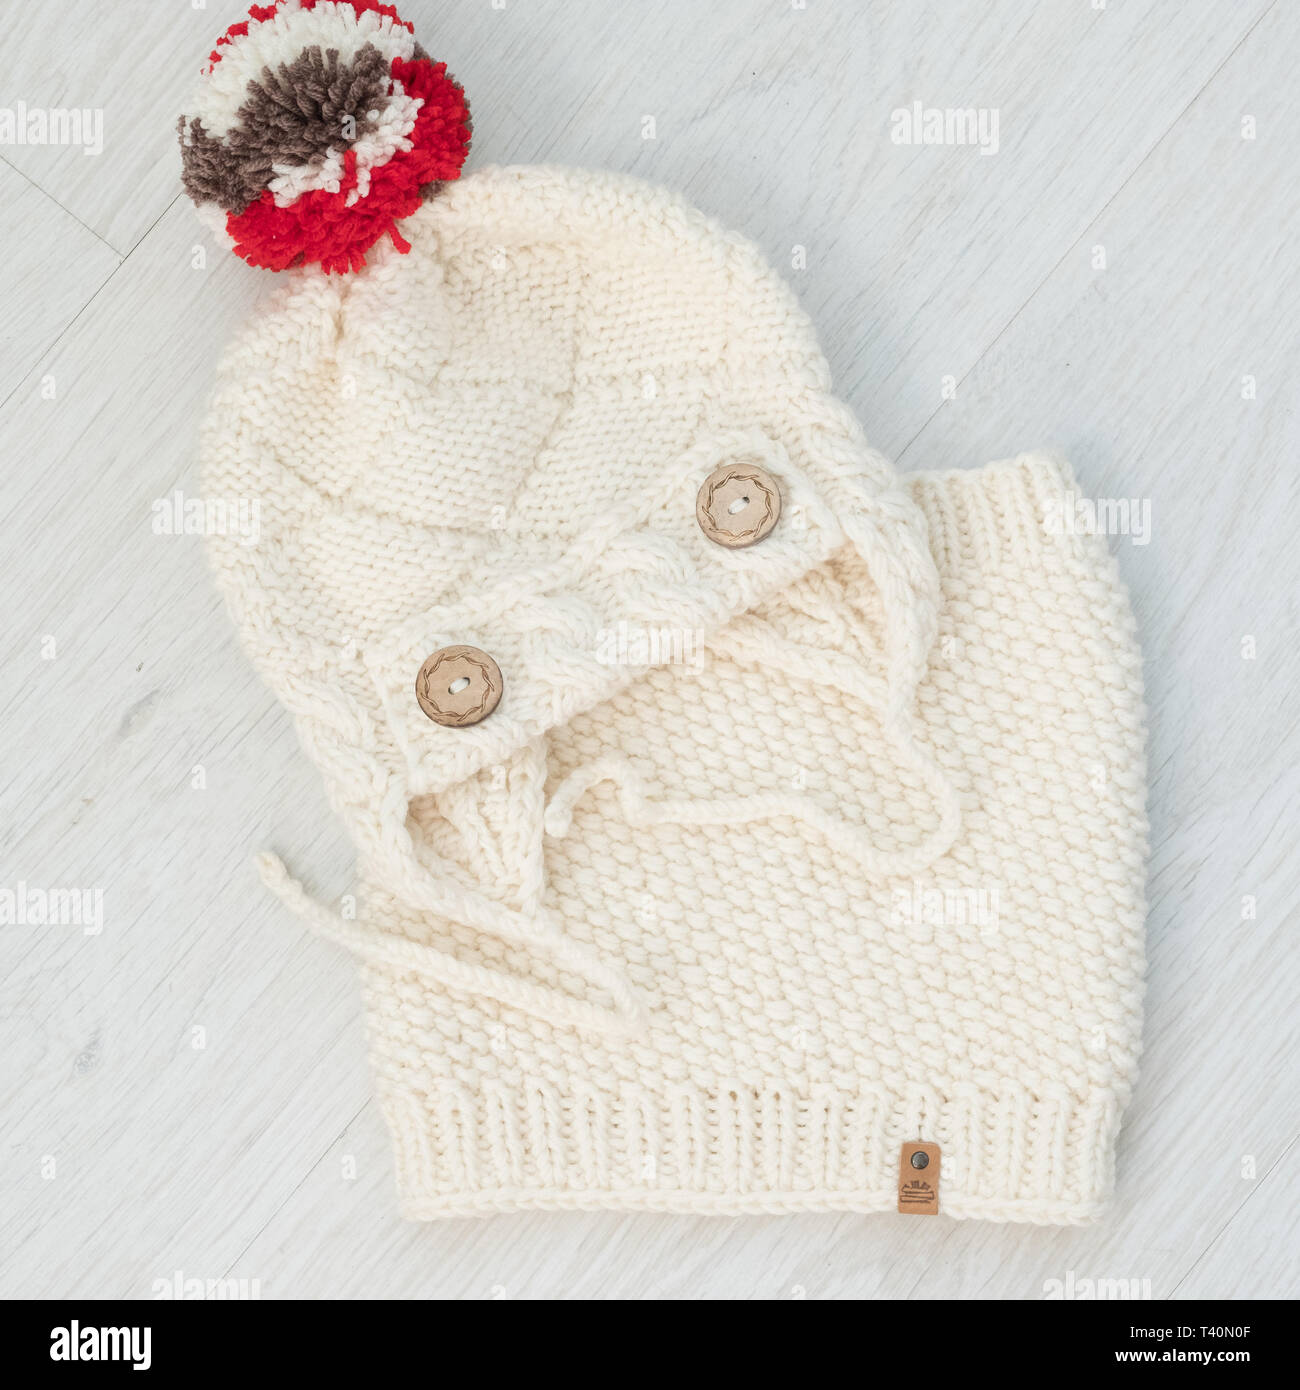 916da6e7f8a Slouchy Hat Stock Photos   Slouchy Hat Stock Images - Alamy